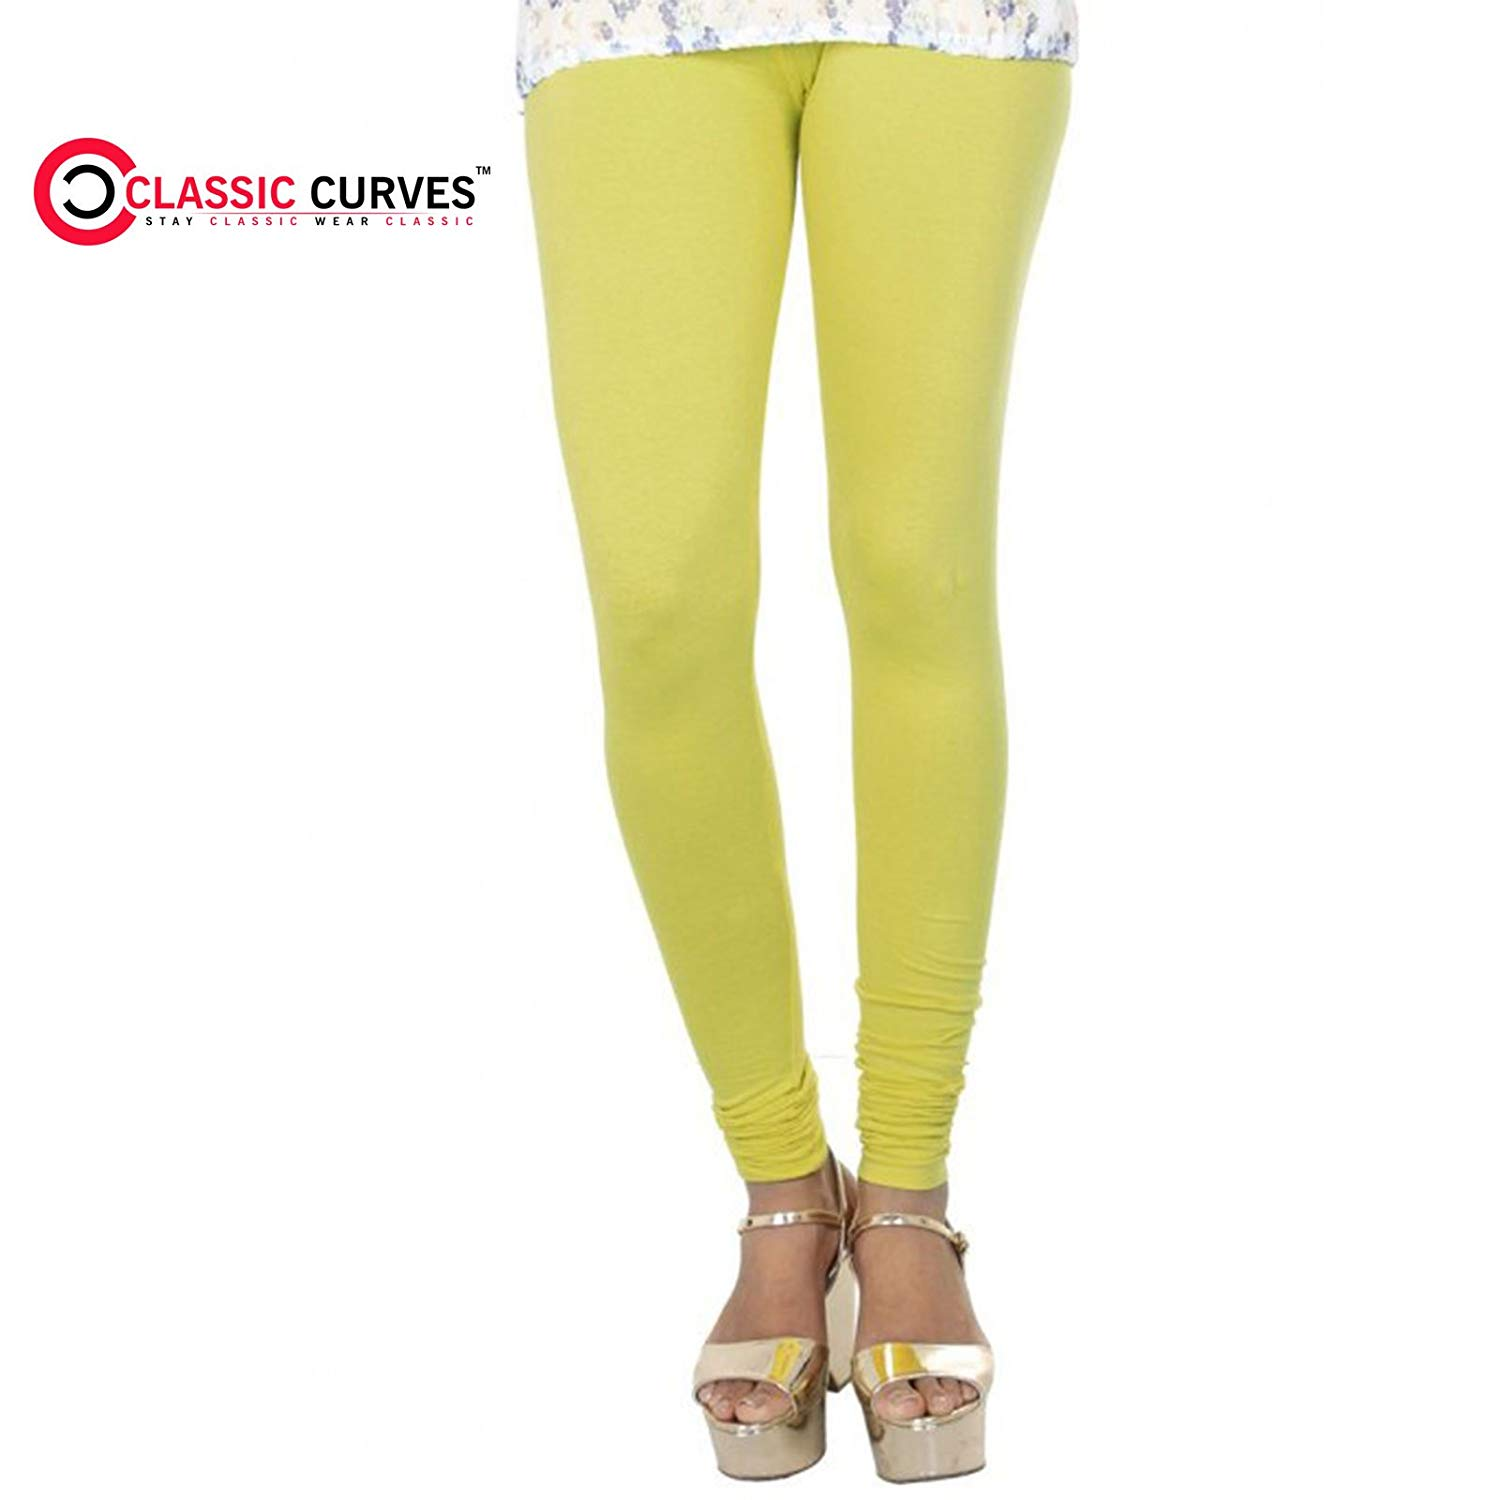 Pack of 2 /_Beige::Yellow Indistar Girls Super Soft Ankle Length Cotton Lycra Leggings